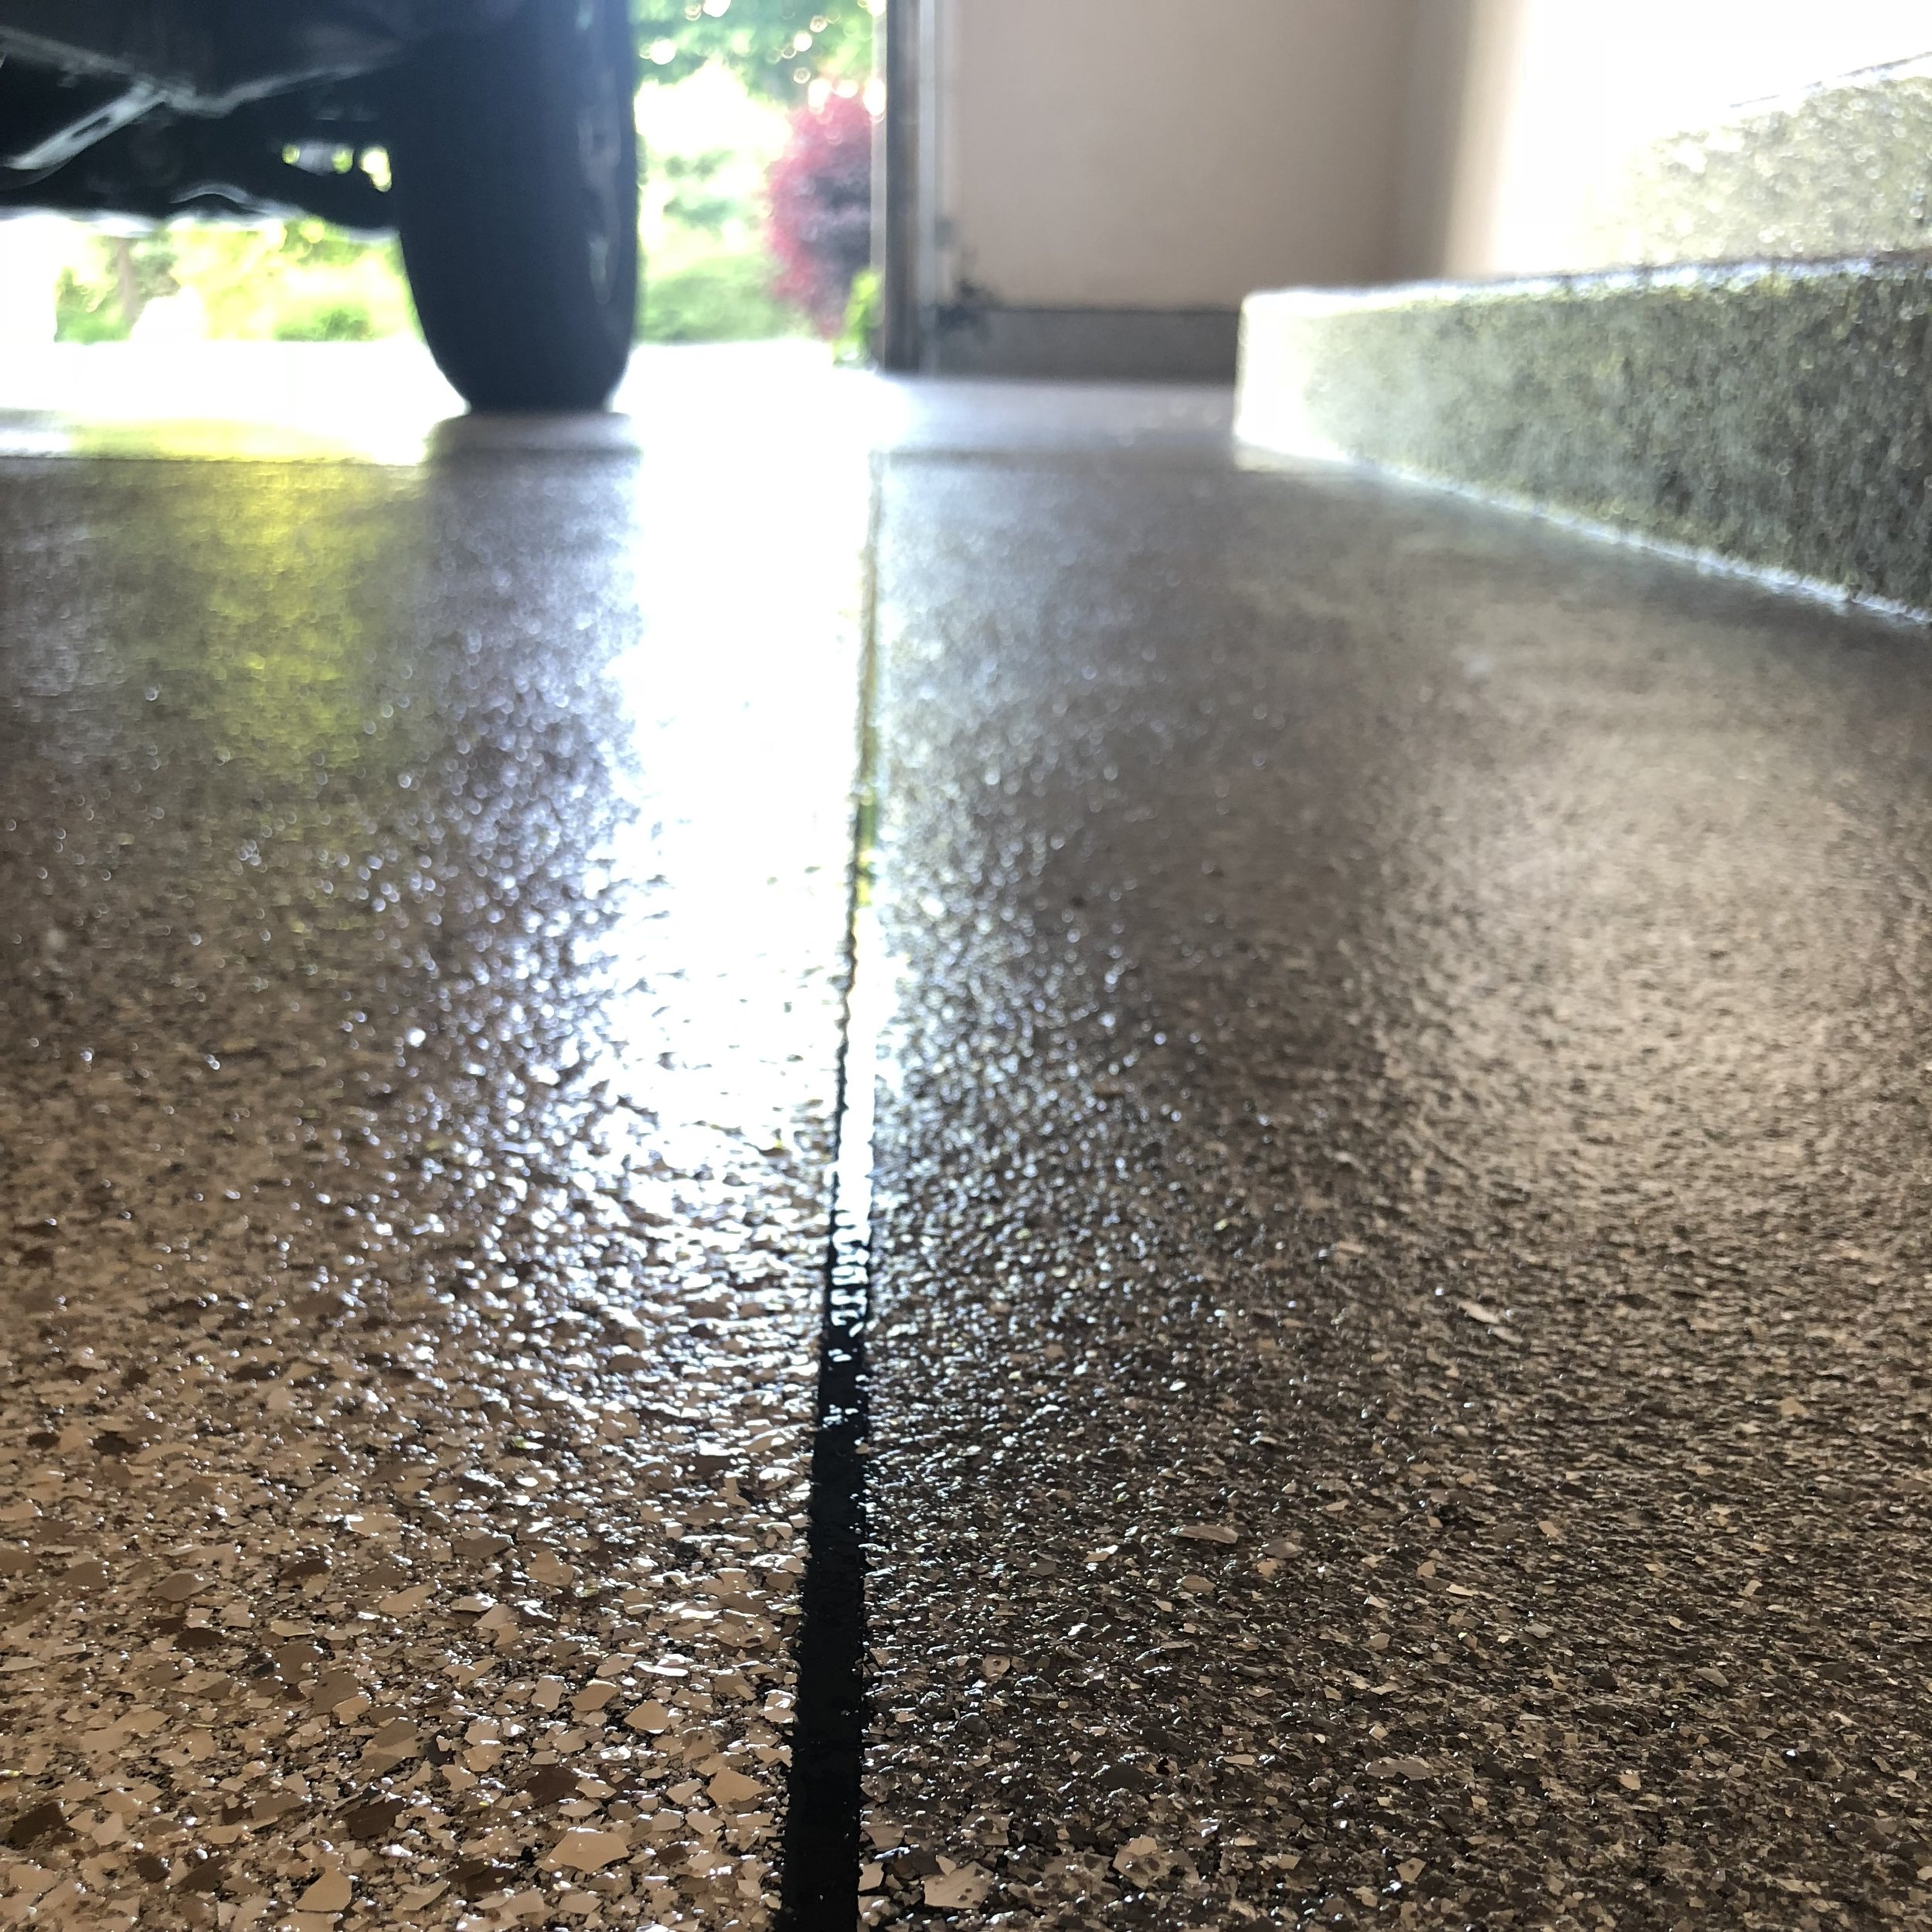 DURABILITY - Epoxy floors can withstand heat, heavy objects, and just about anything else you throw at it. This rigid material will astound you with the strength it brings.